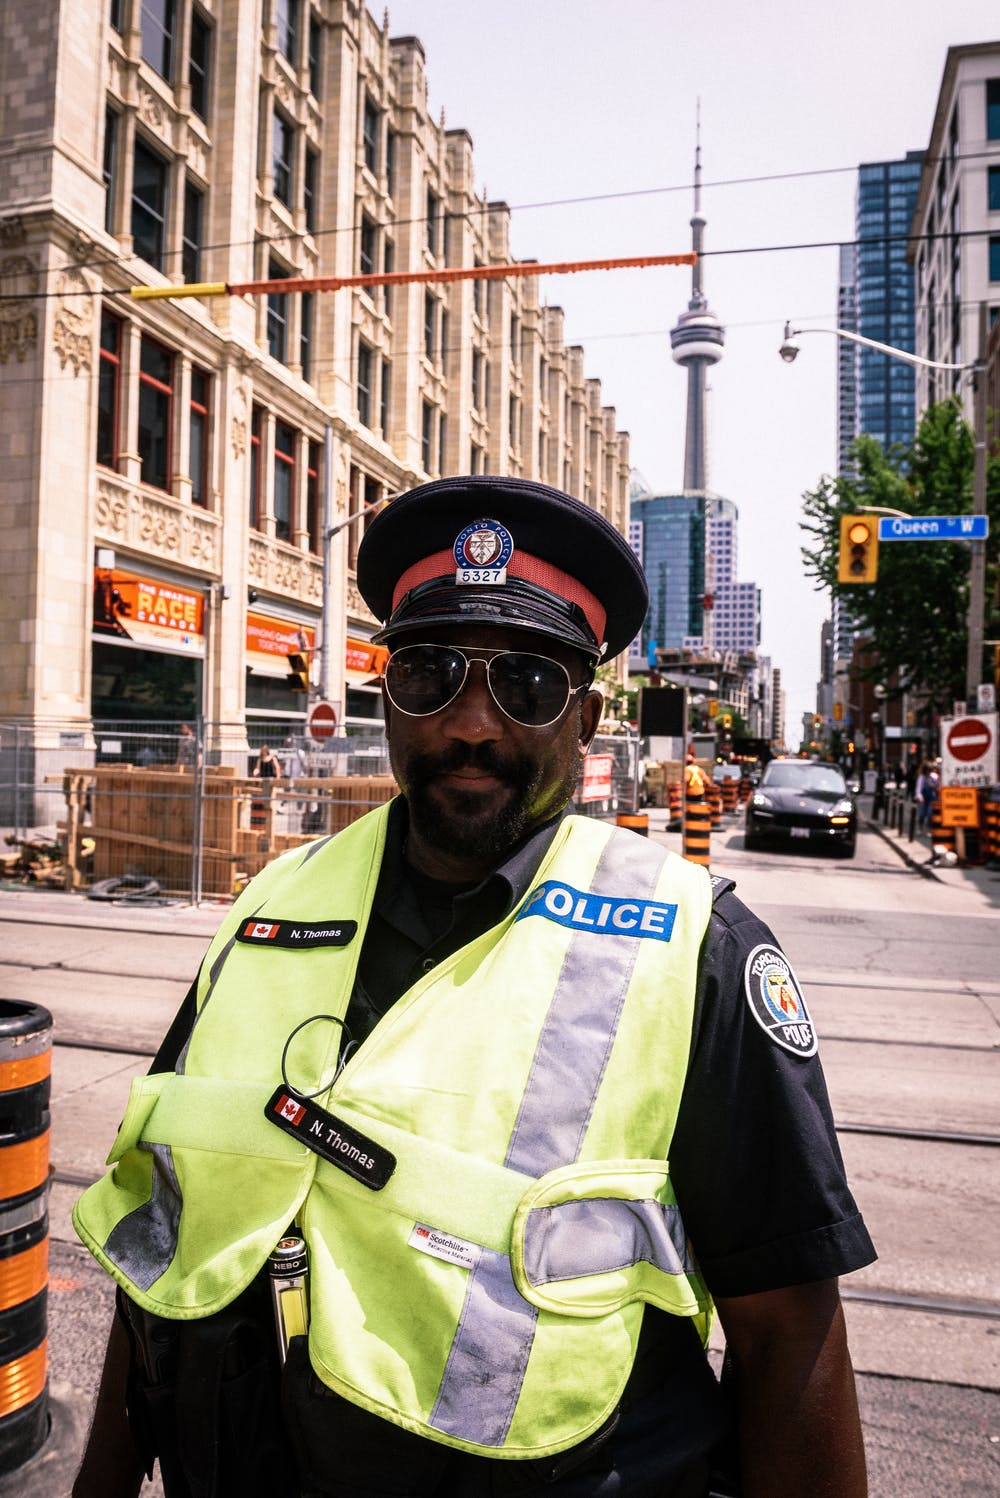 Police standing on the street | Photo: Pexels